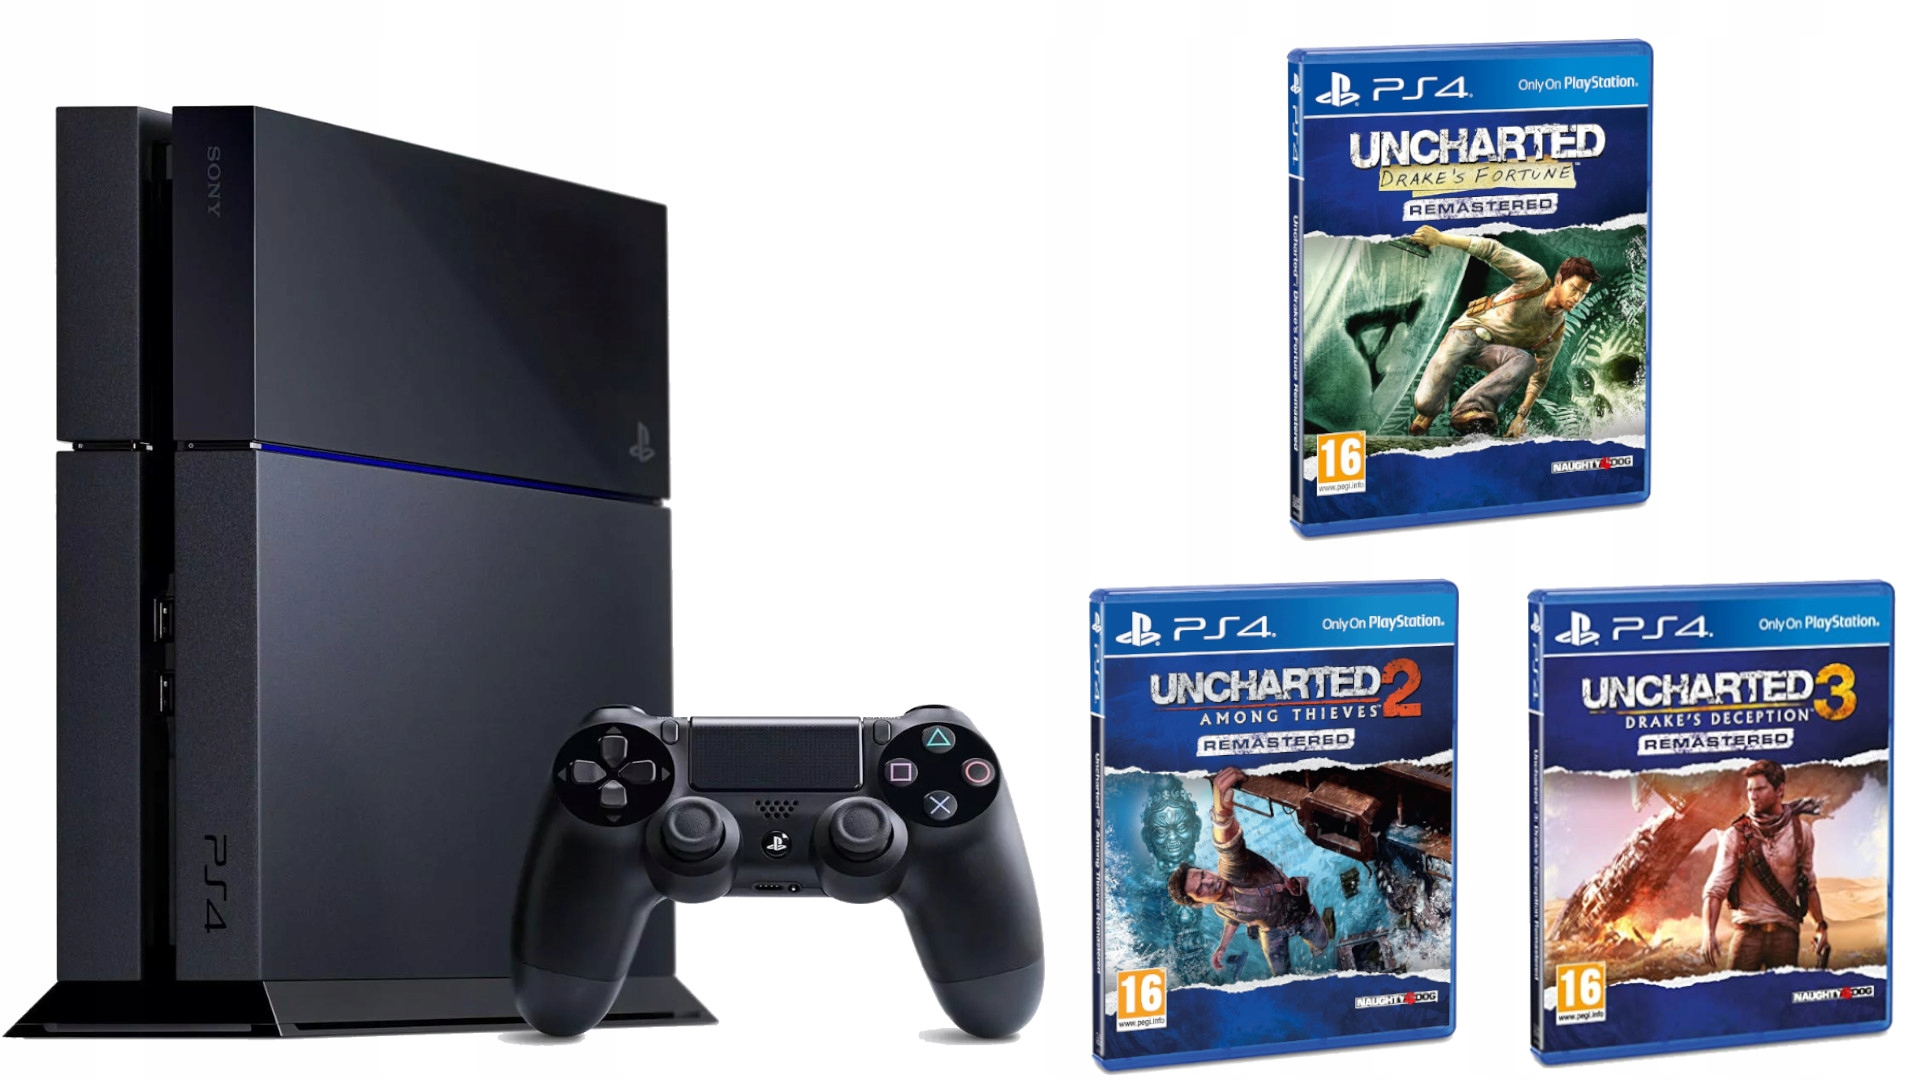 Item SET PS4 500GB + PAD + 3 GAMES ON VACATION